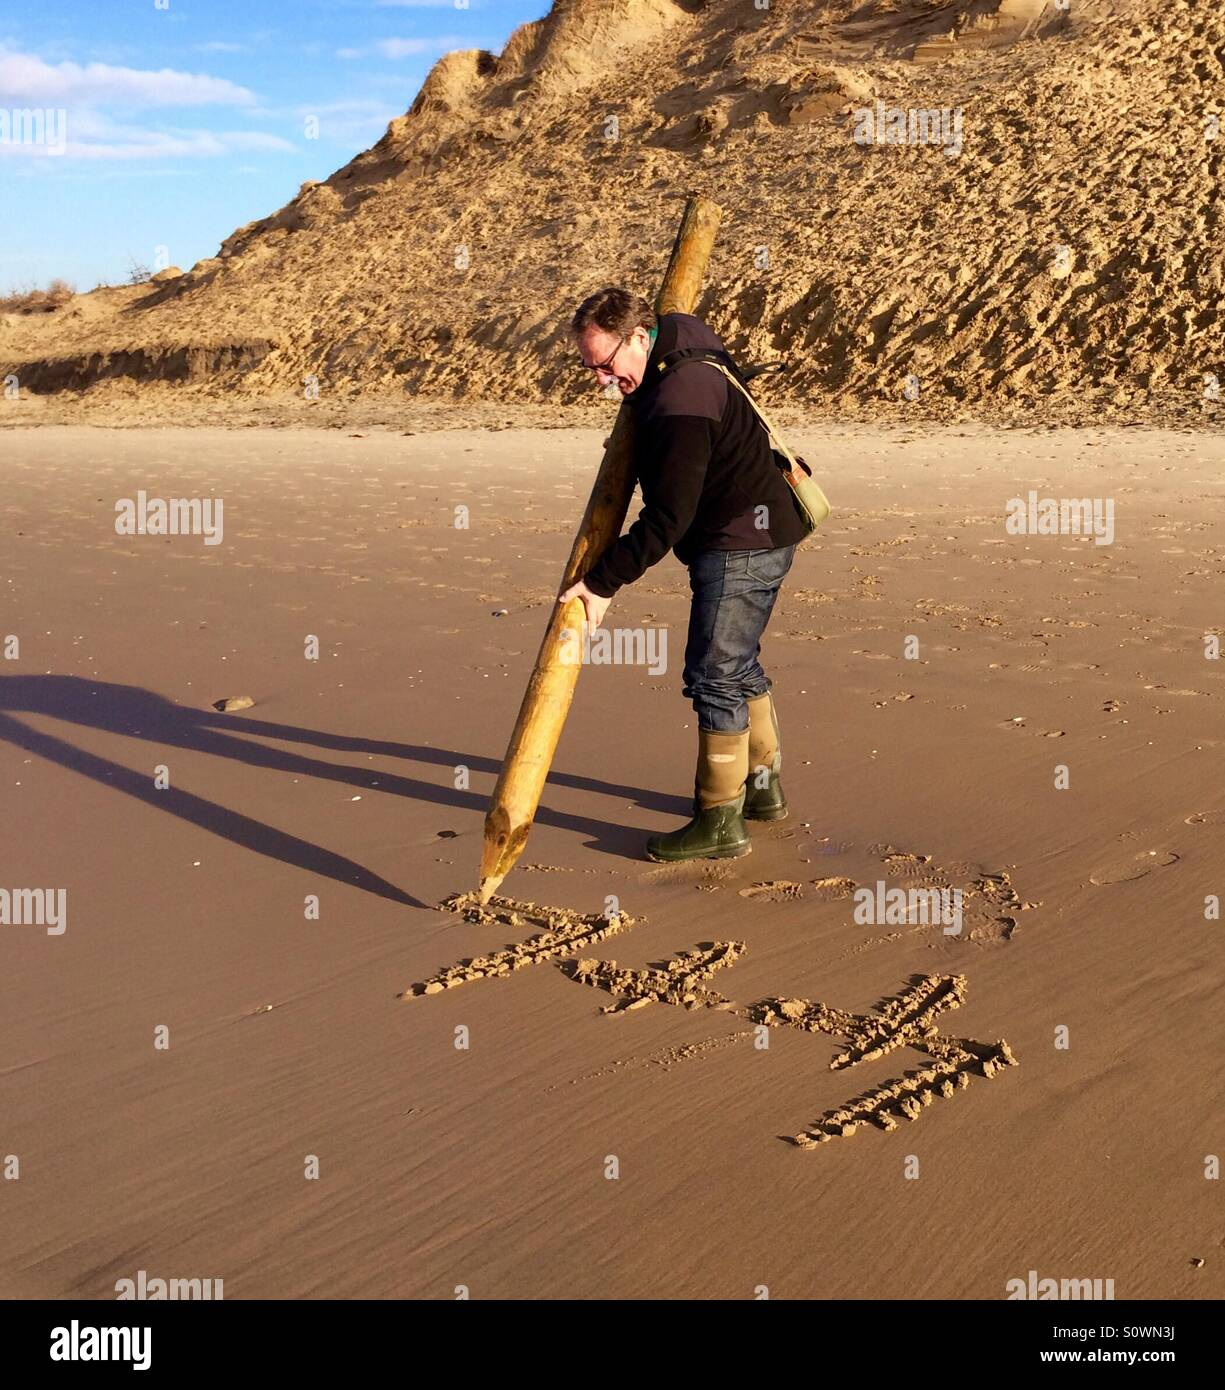 Writing with large pencil in the sand - Stock Image